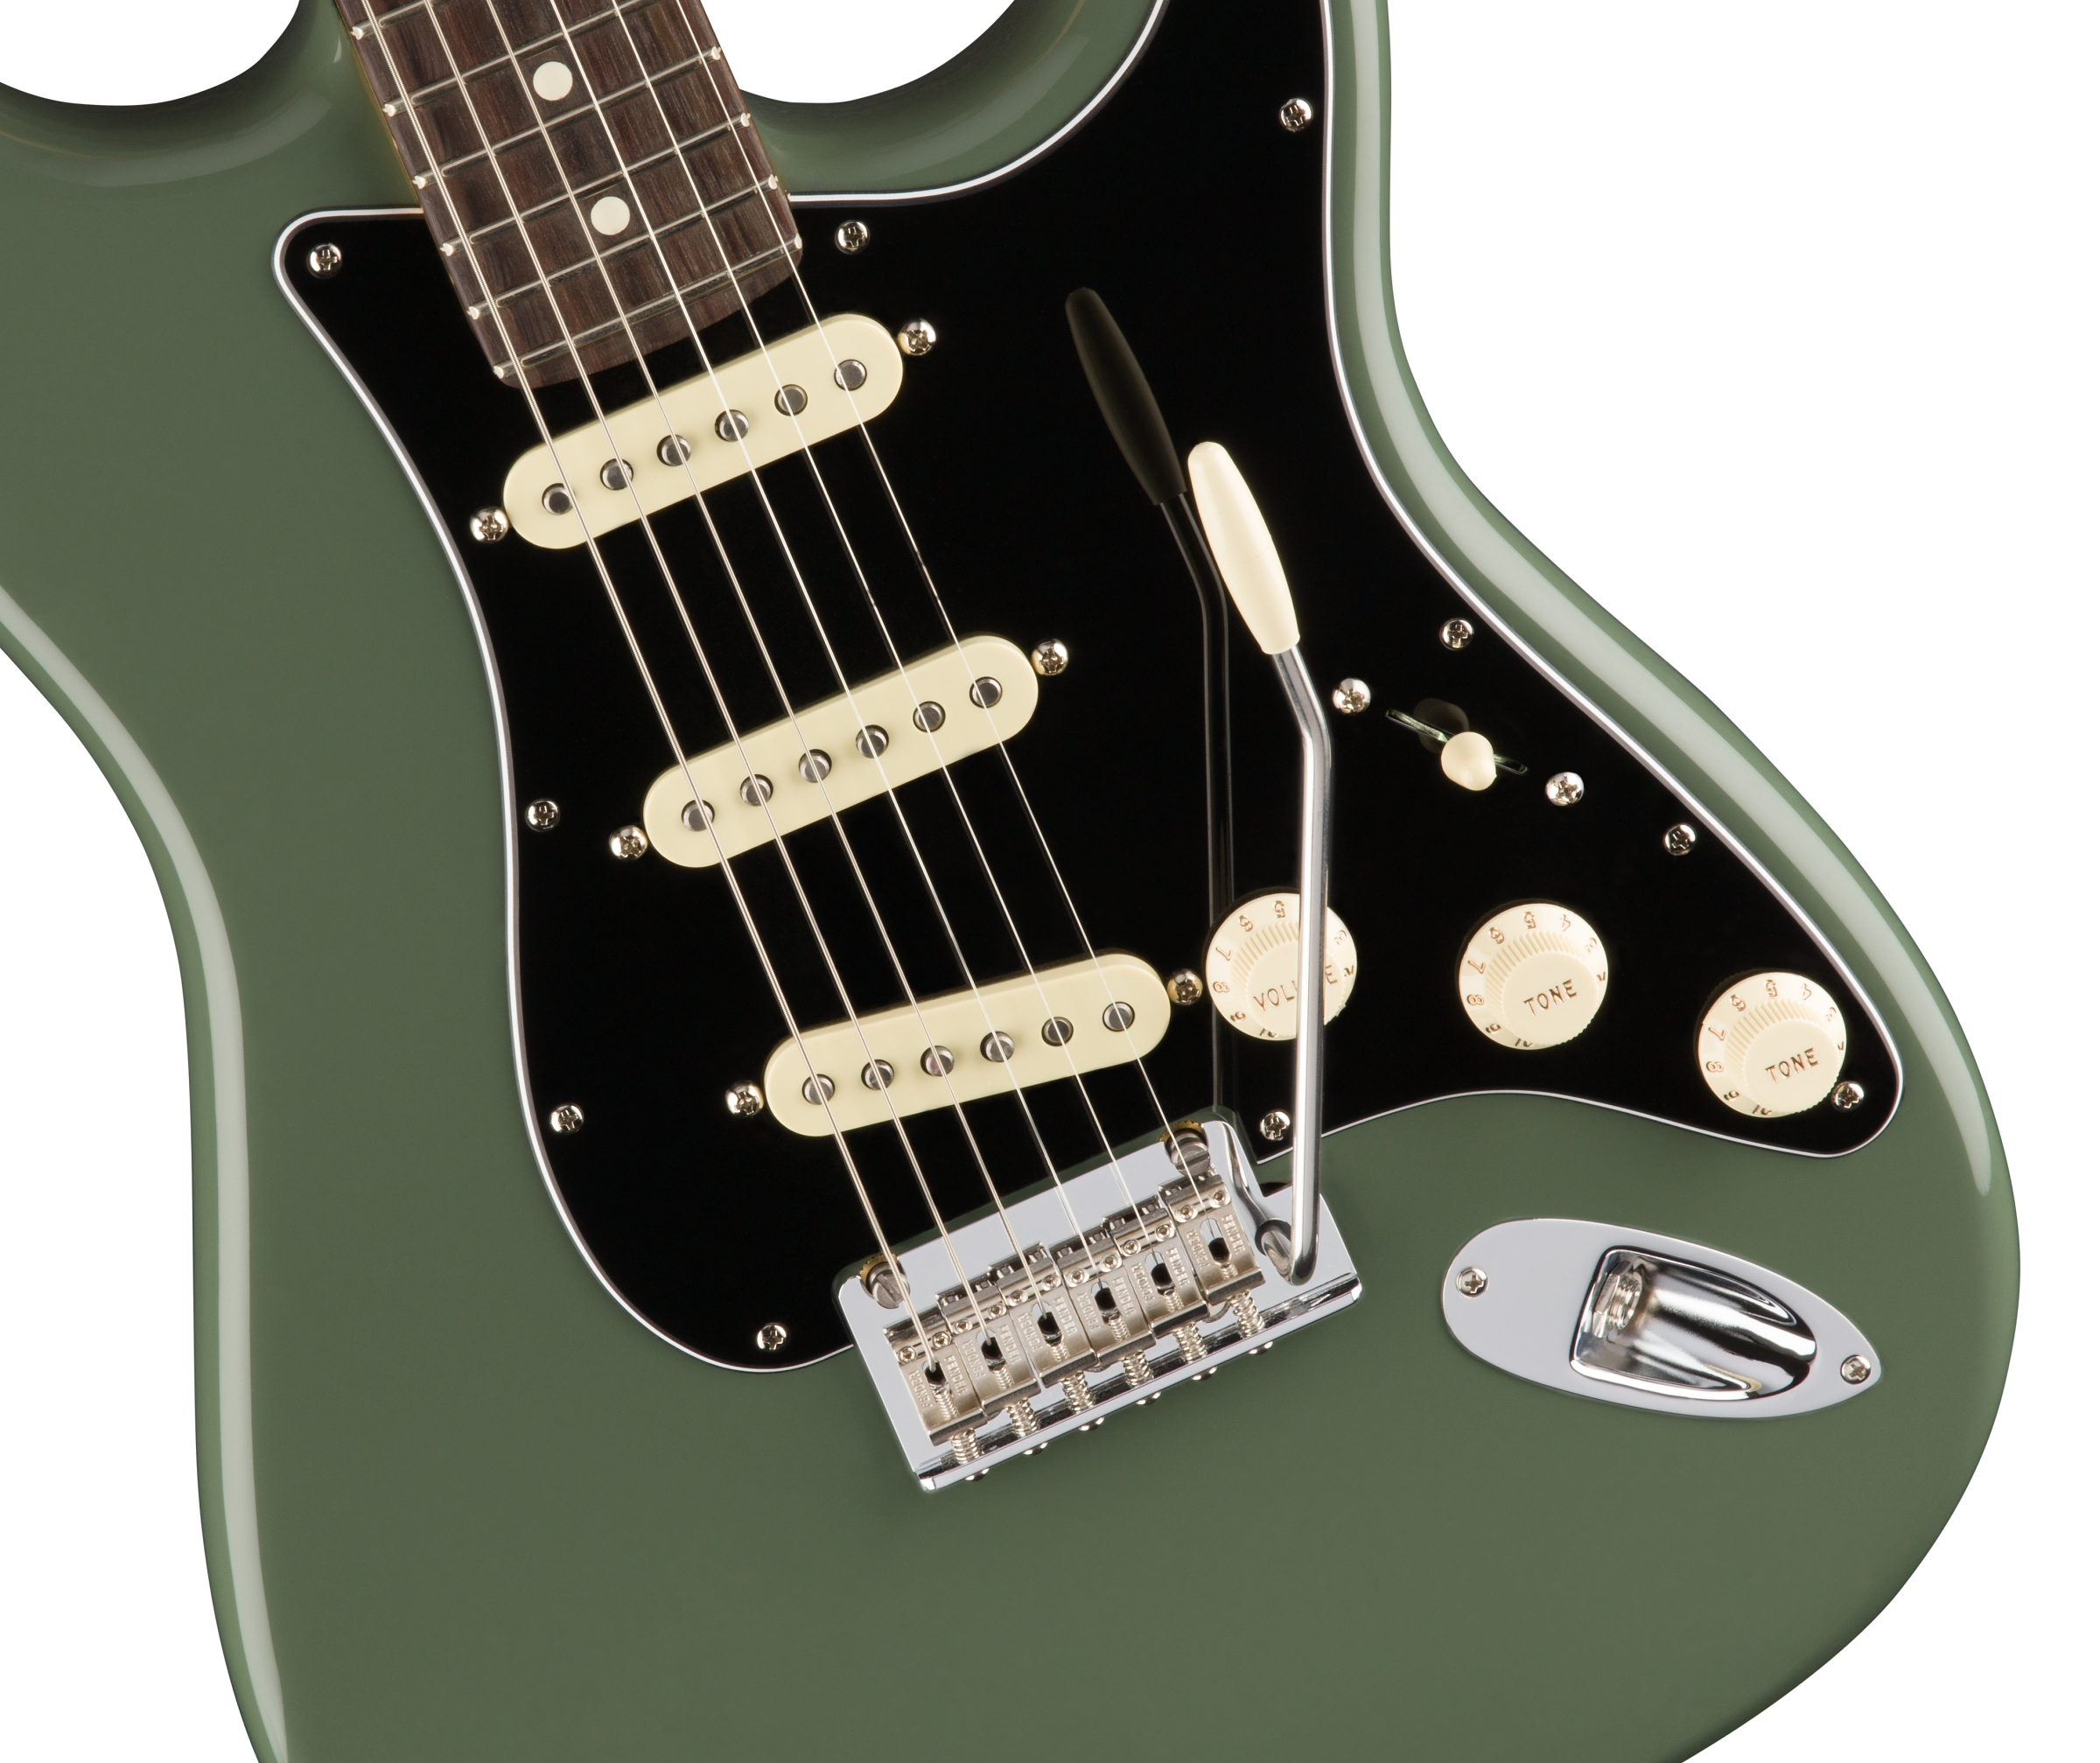 0113010776_gtr_frtbdydtl_001_nr fender american pro stratocaster�, rosewood fingerboard, antique olive Telecaster 3-Way Switch Wiring Diagram at crackthecode.co